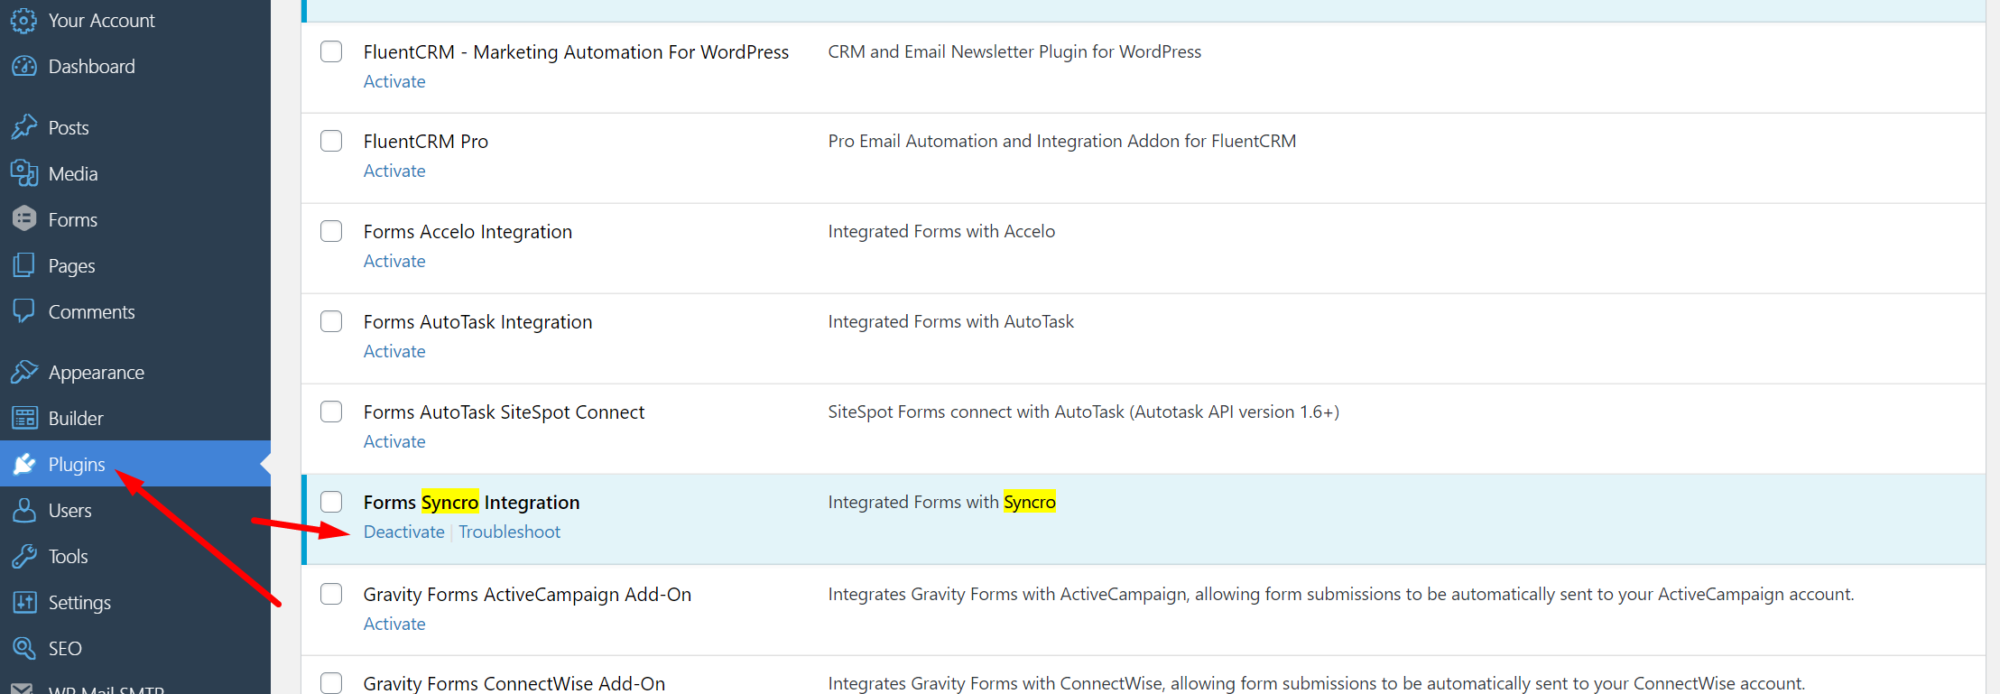 Activate Syncro Integration in the Plugins Menu